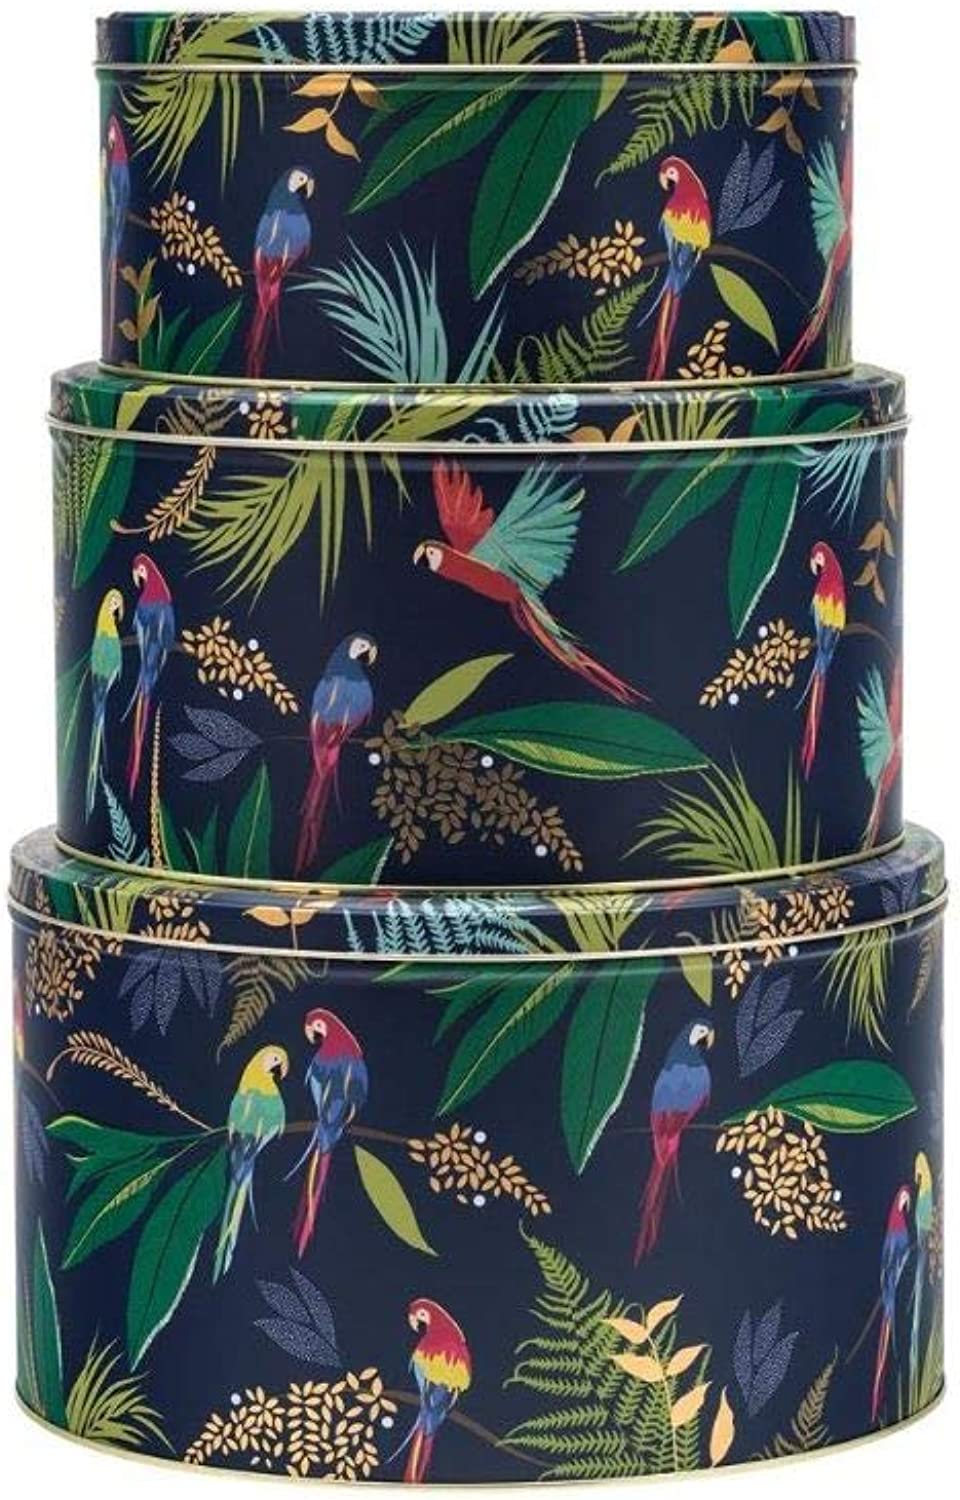 Sara Miller Set of 3 Nested Round Cake Tins in Tropical Parred Design   Green gold Purple Jungle Themed Airtight Cake Storage Tin Made in UK